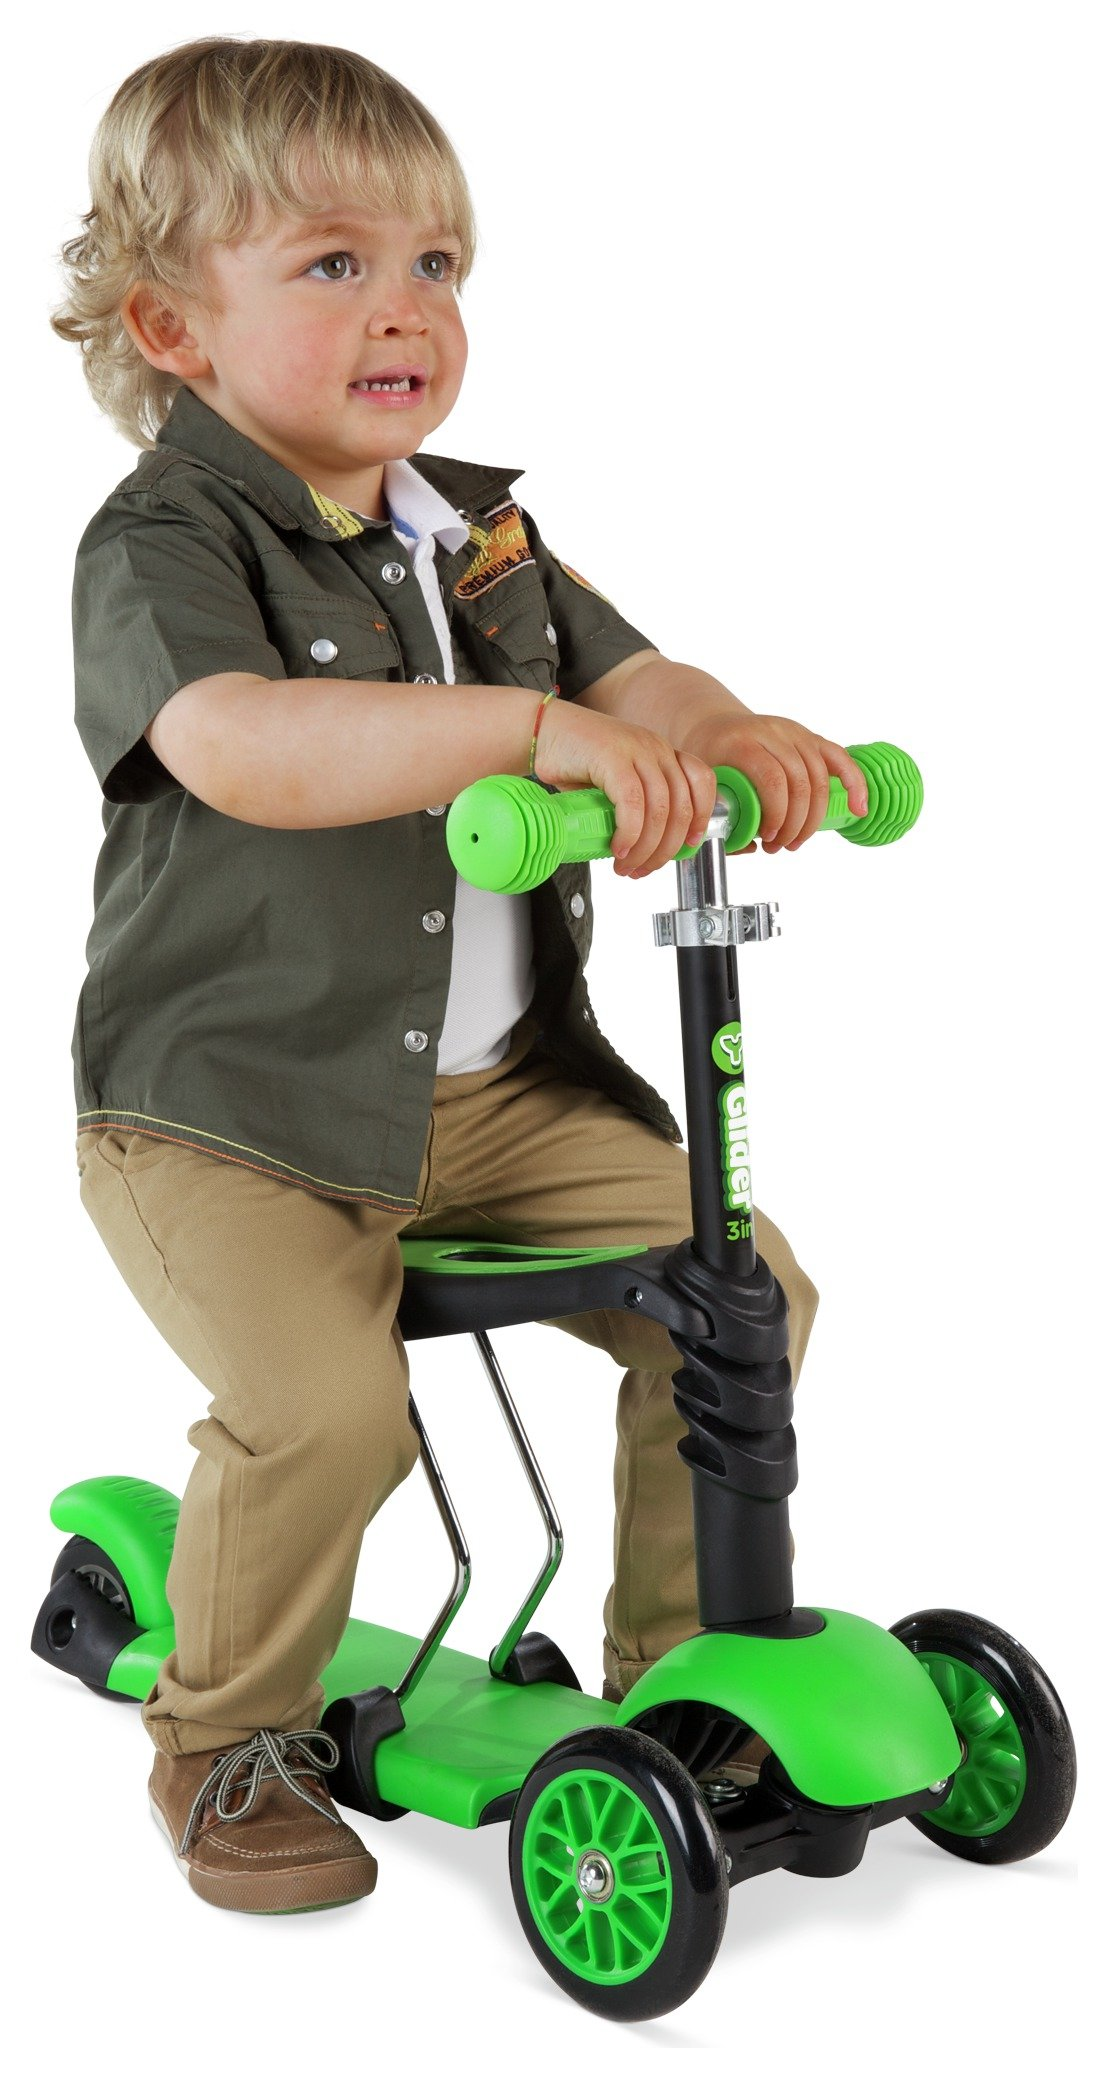 Buy Yglider 3 In 1 Scooter Black Green Scooters Argos